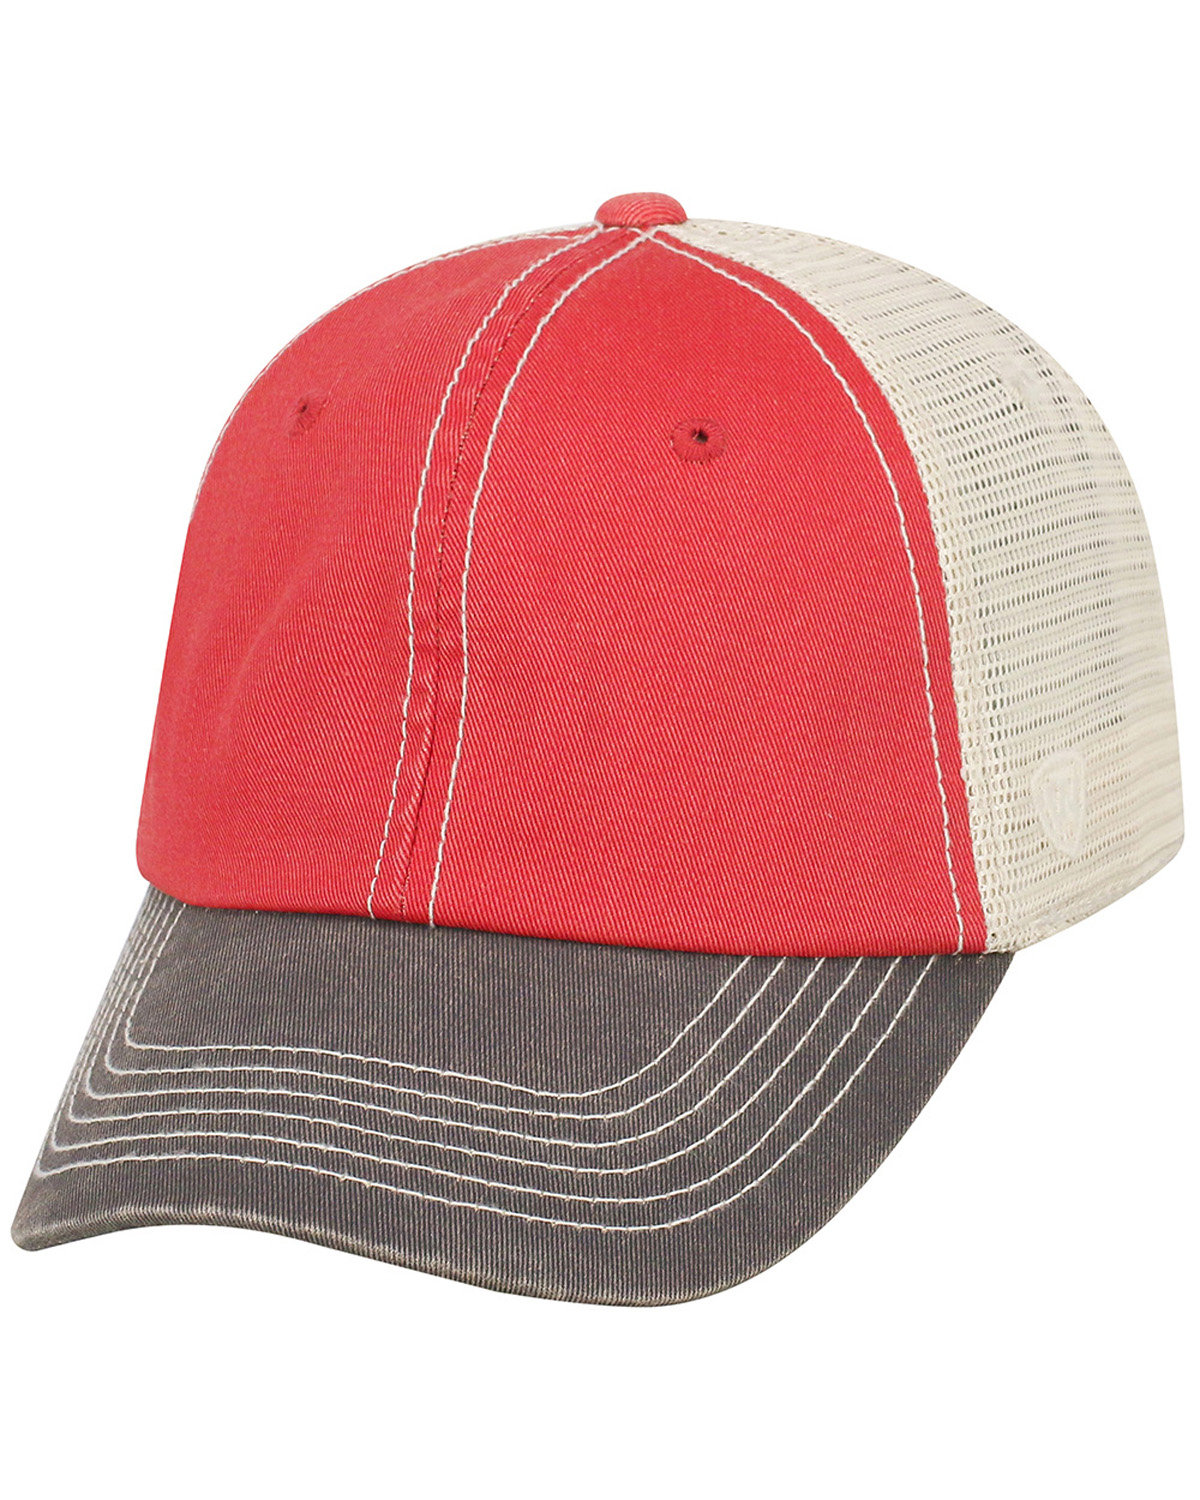 Top Of The World Adult Offroad Cap RED